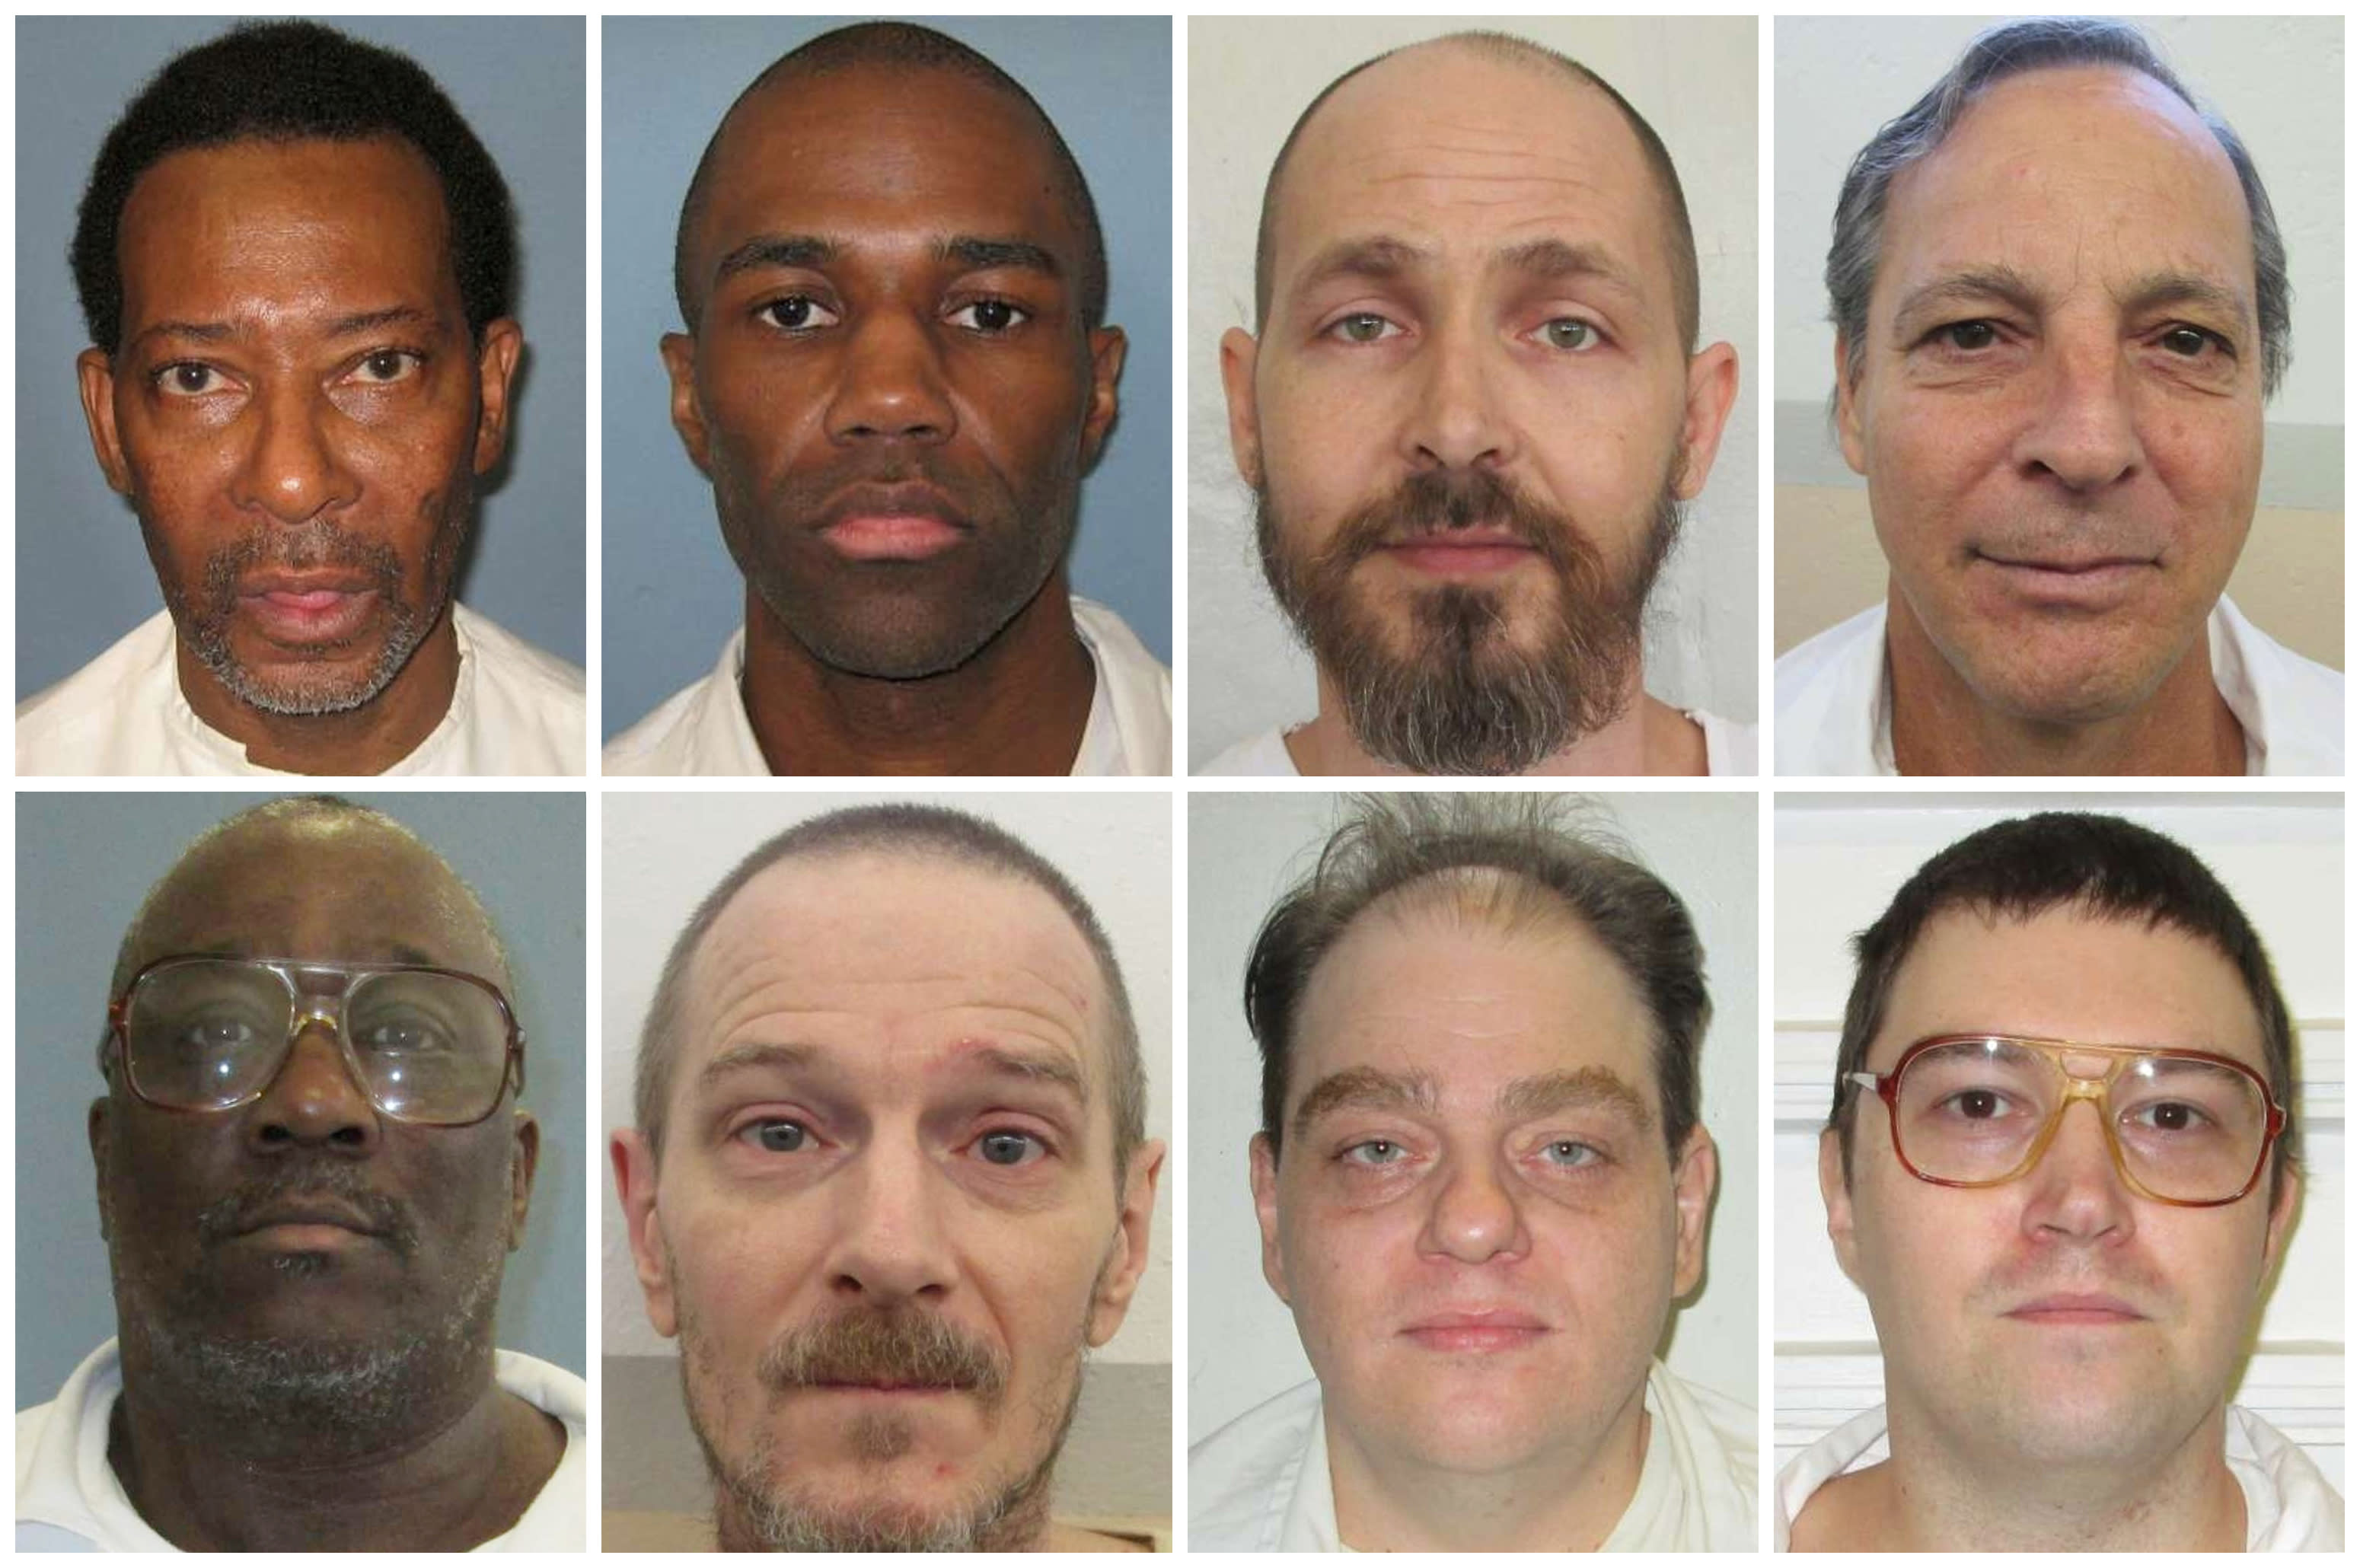 Lethal injection or gas? Alabama's death row gets to choose